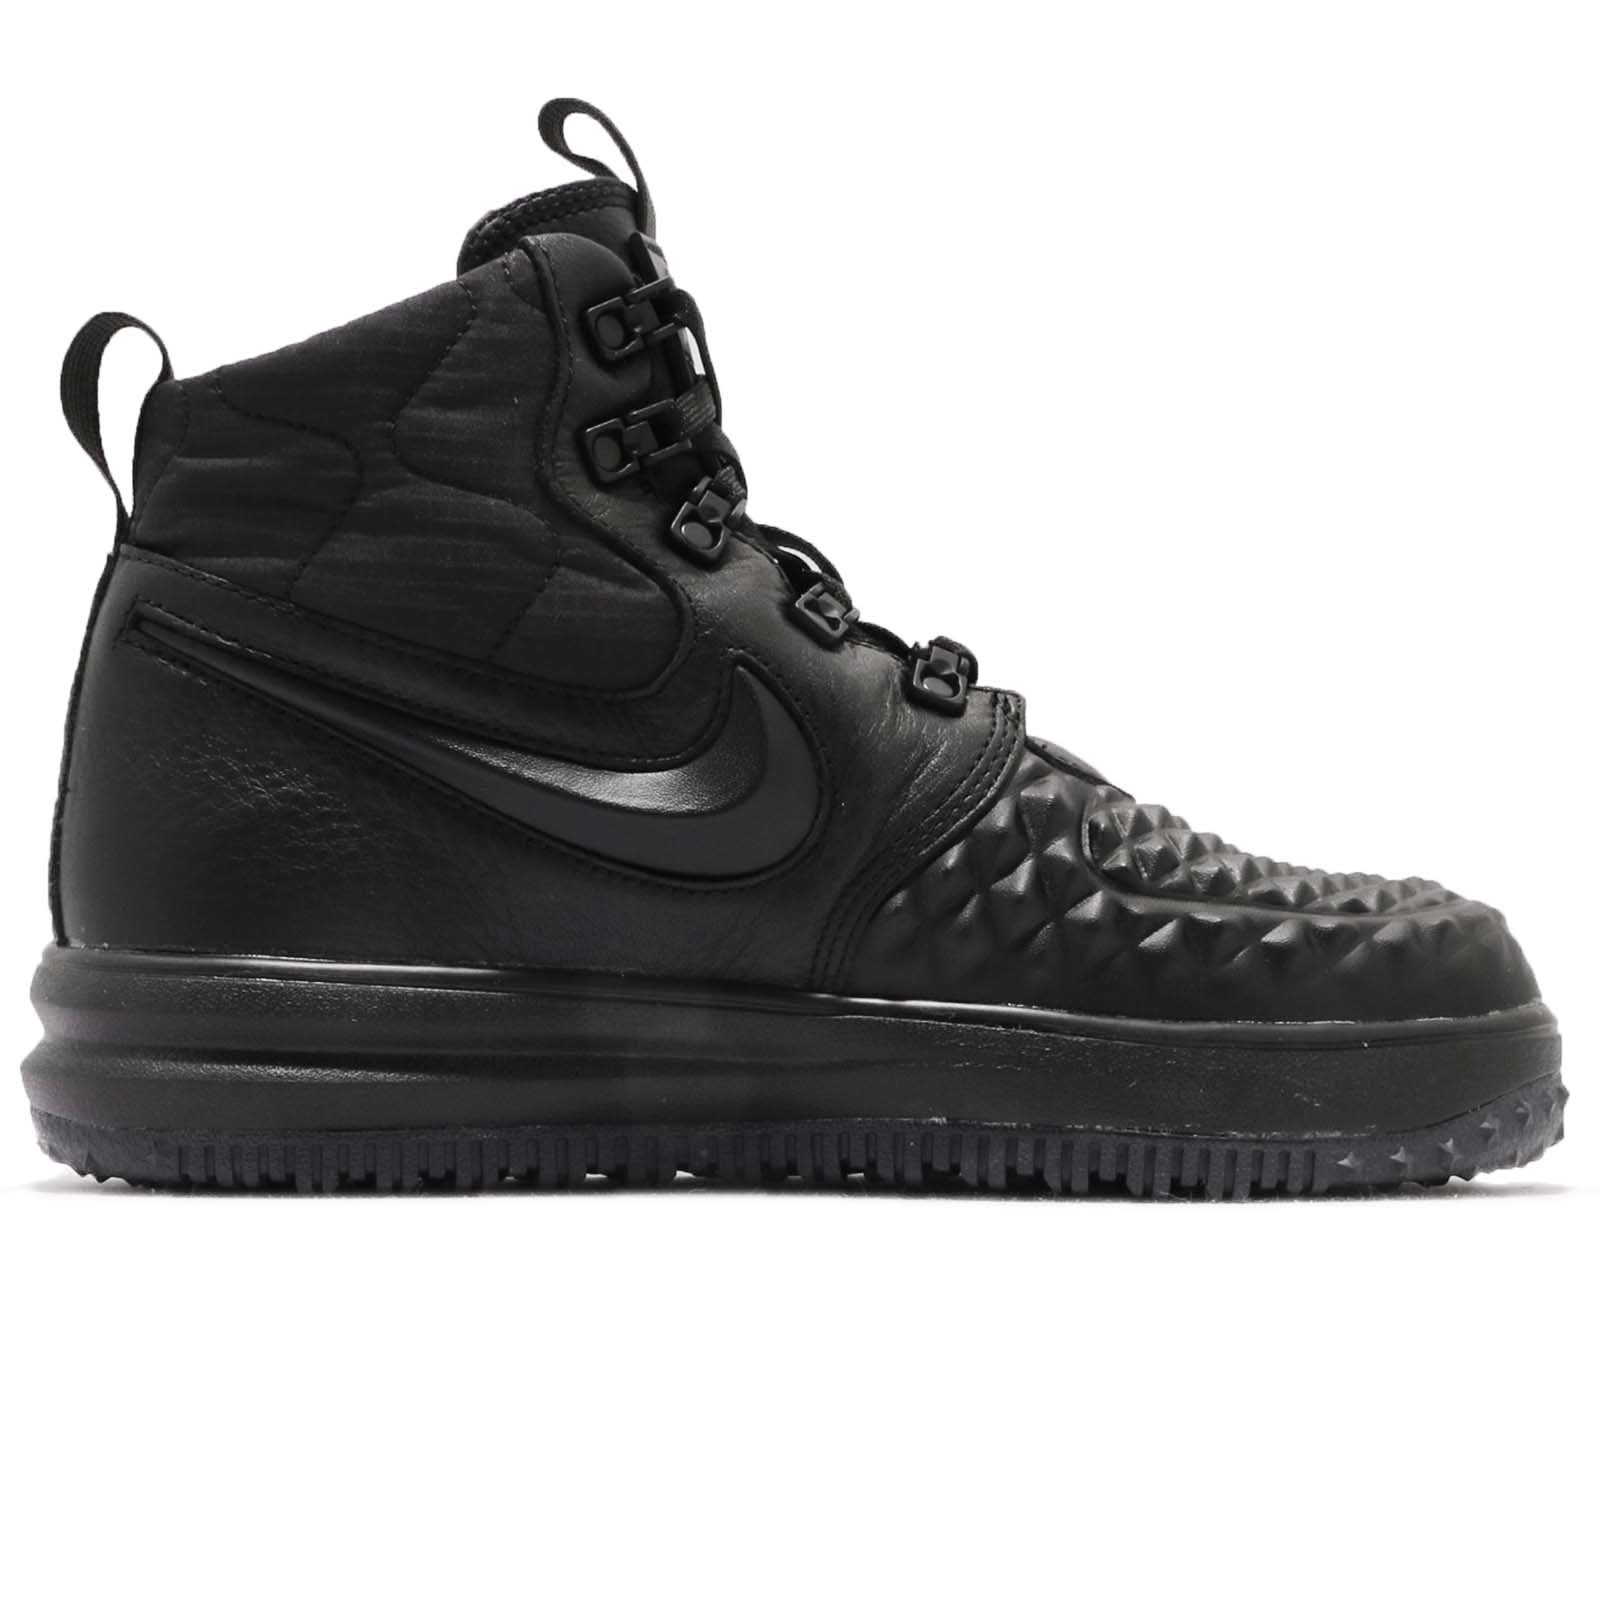 Nike Kid's LF1 Duckboot 17 GS, Black/Black-Anthracite, Youth Size 3.5 by Nike (Image #2)